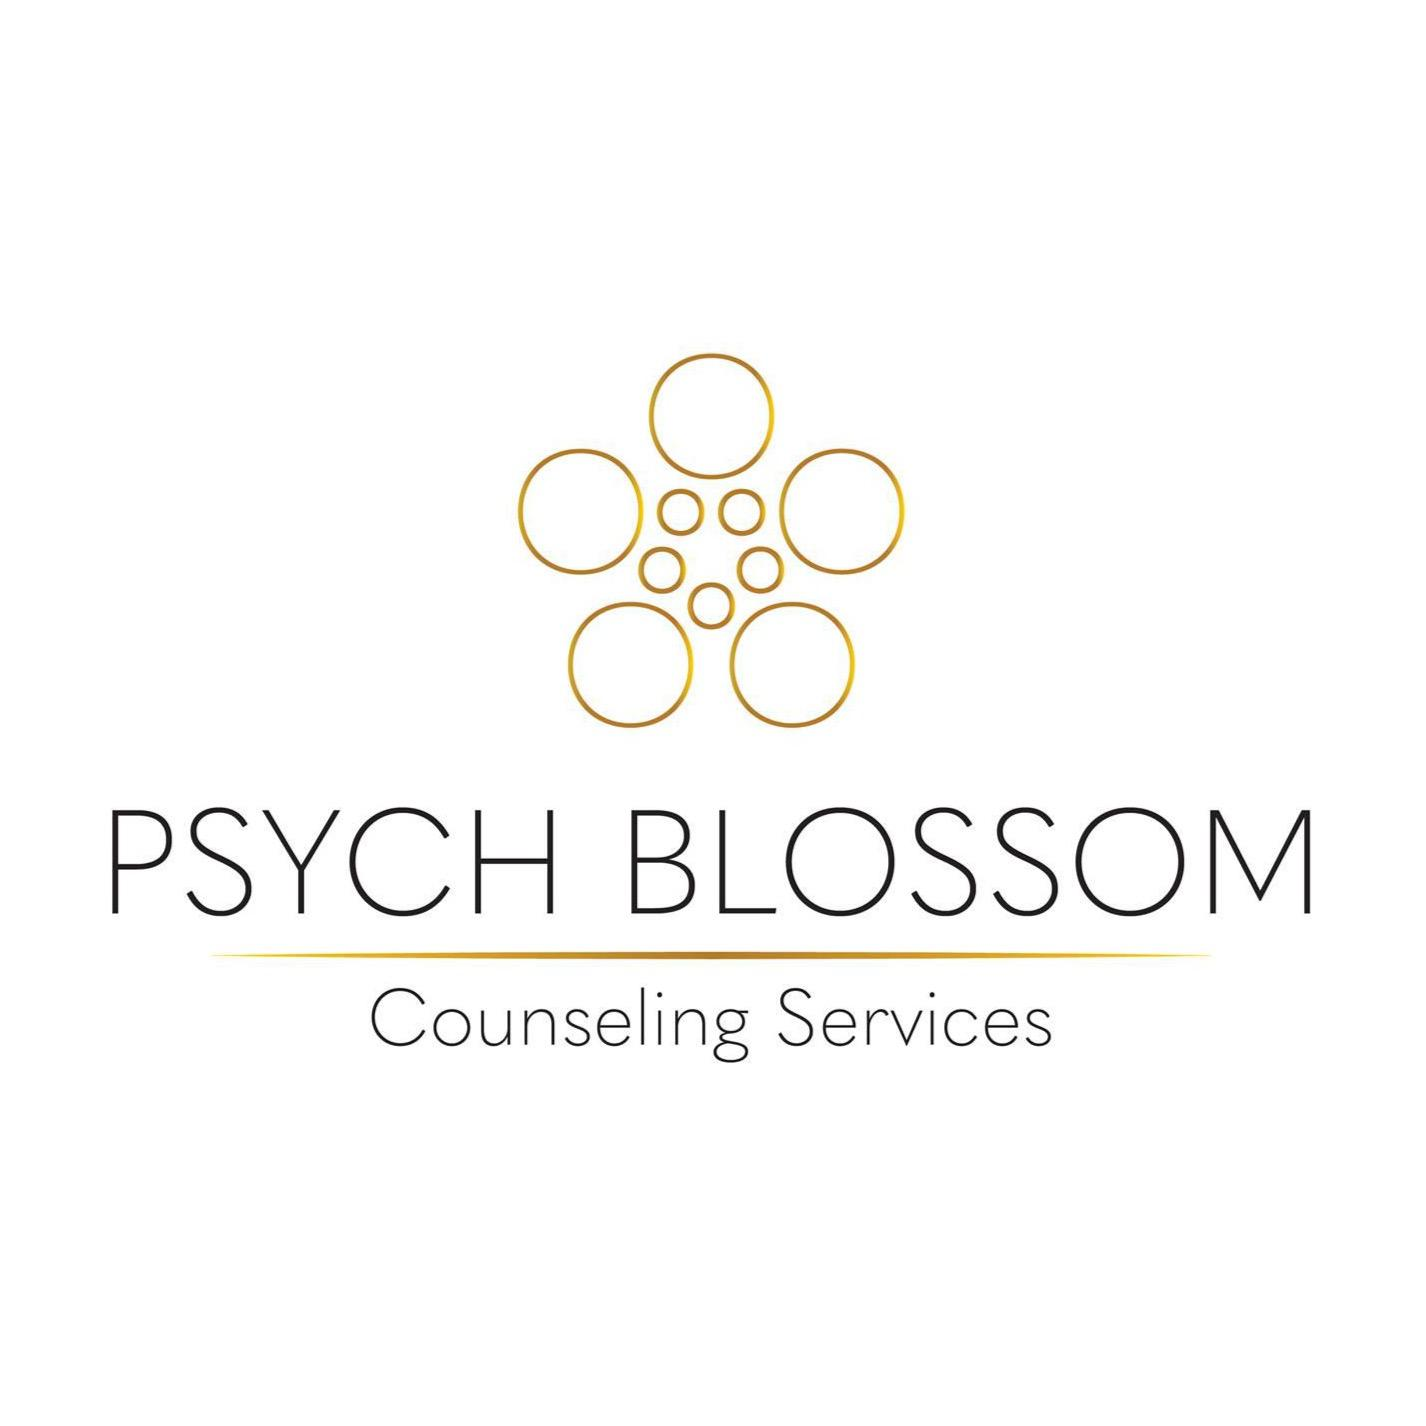 Psych Blossom Counseling Services